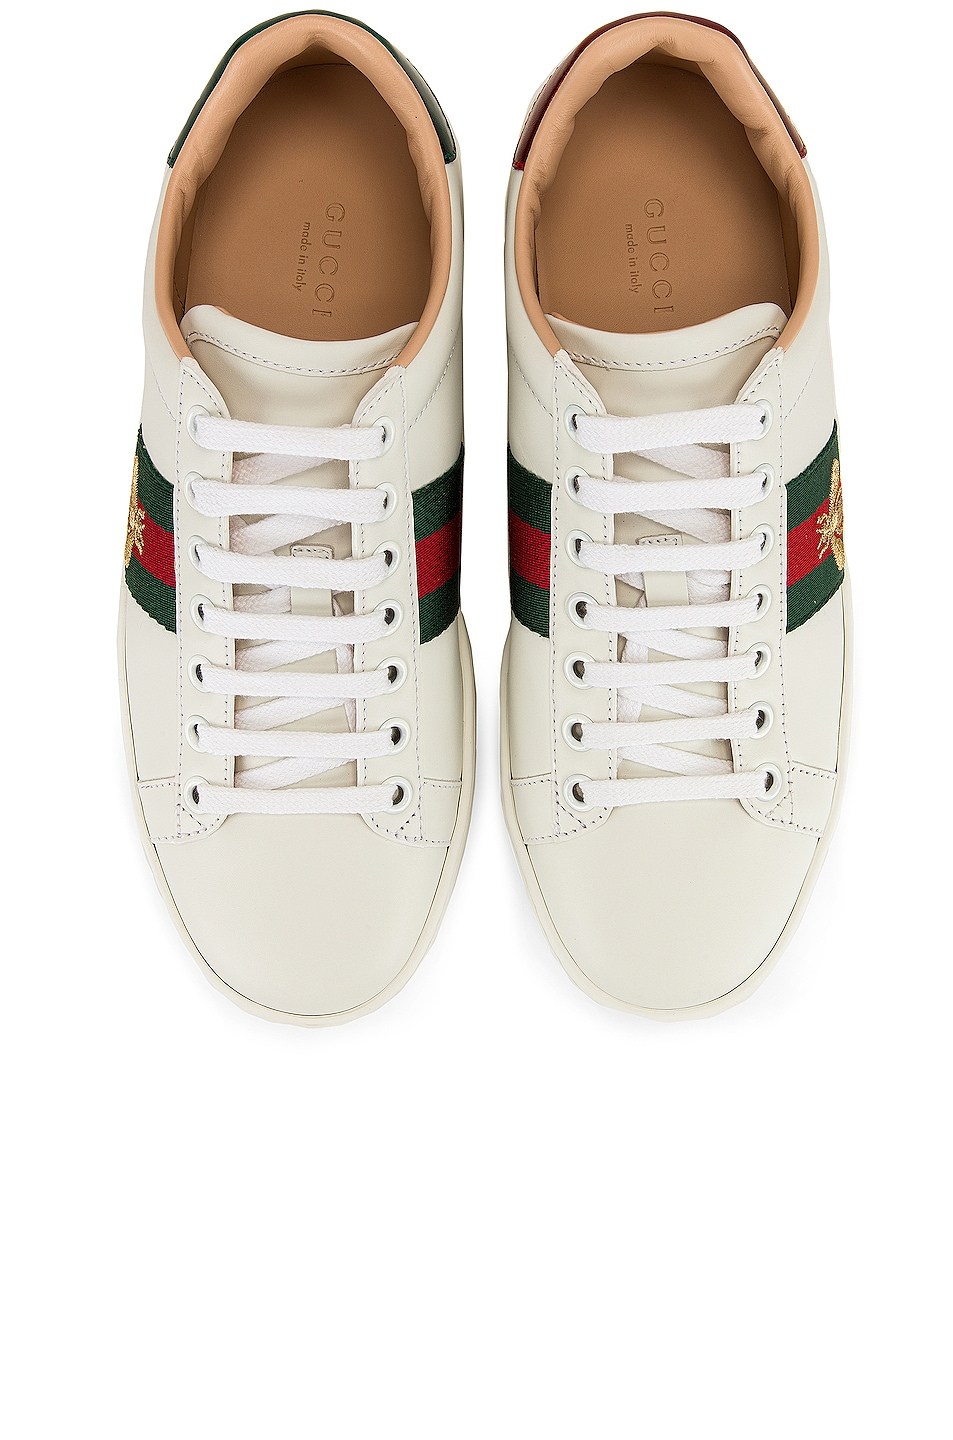 Image 2 of Gucci New Ace Platform Sneakers in White & Green & Red